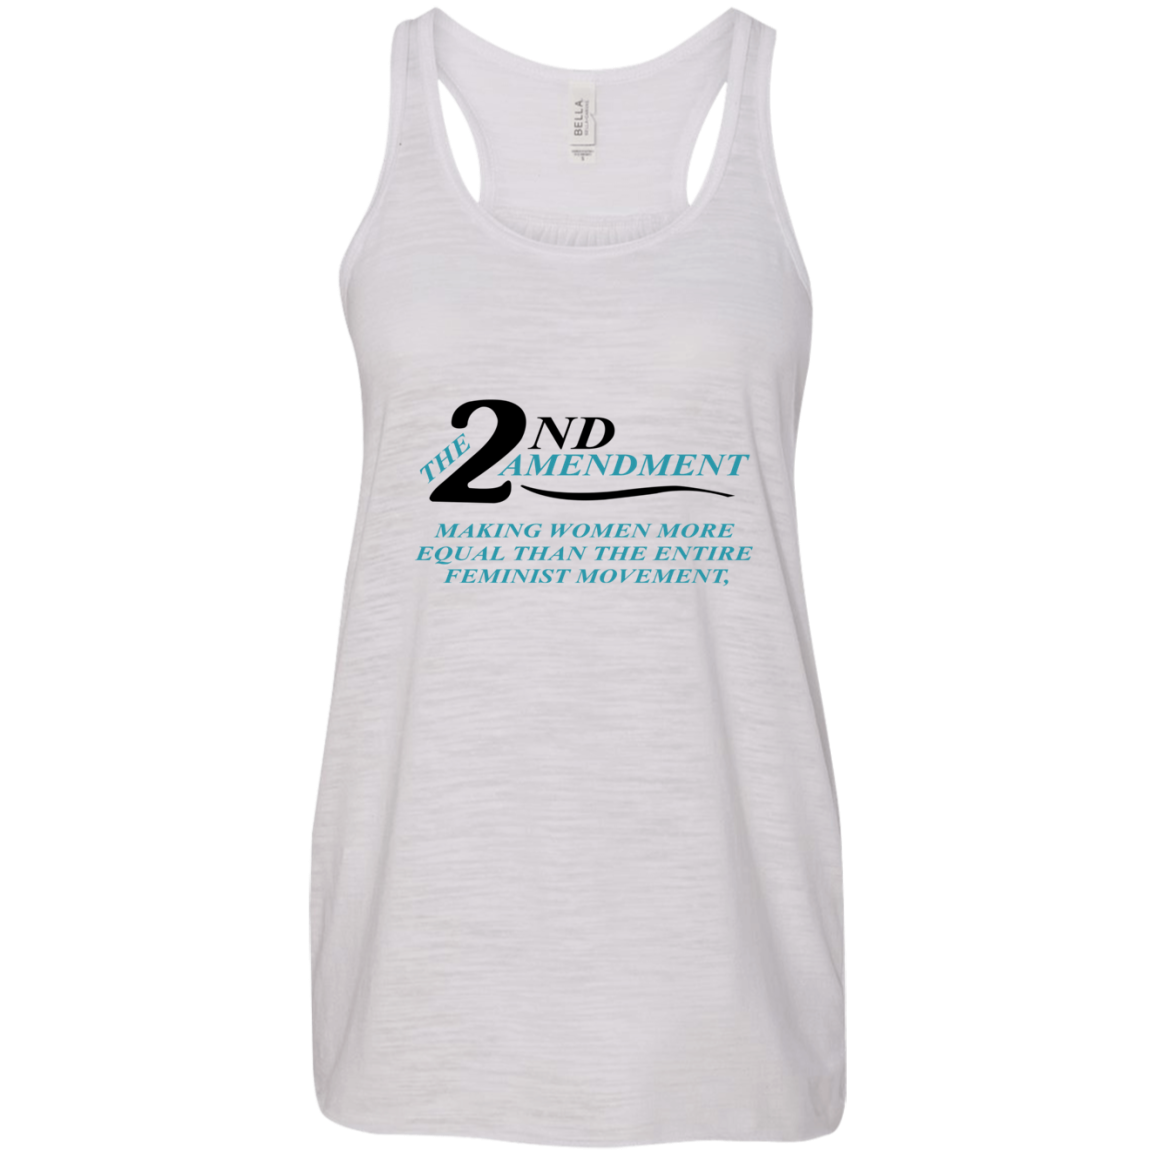 American T shirts The 2nd Amendment Making Women More Equal Hoodies Sweatshirts TH